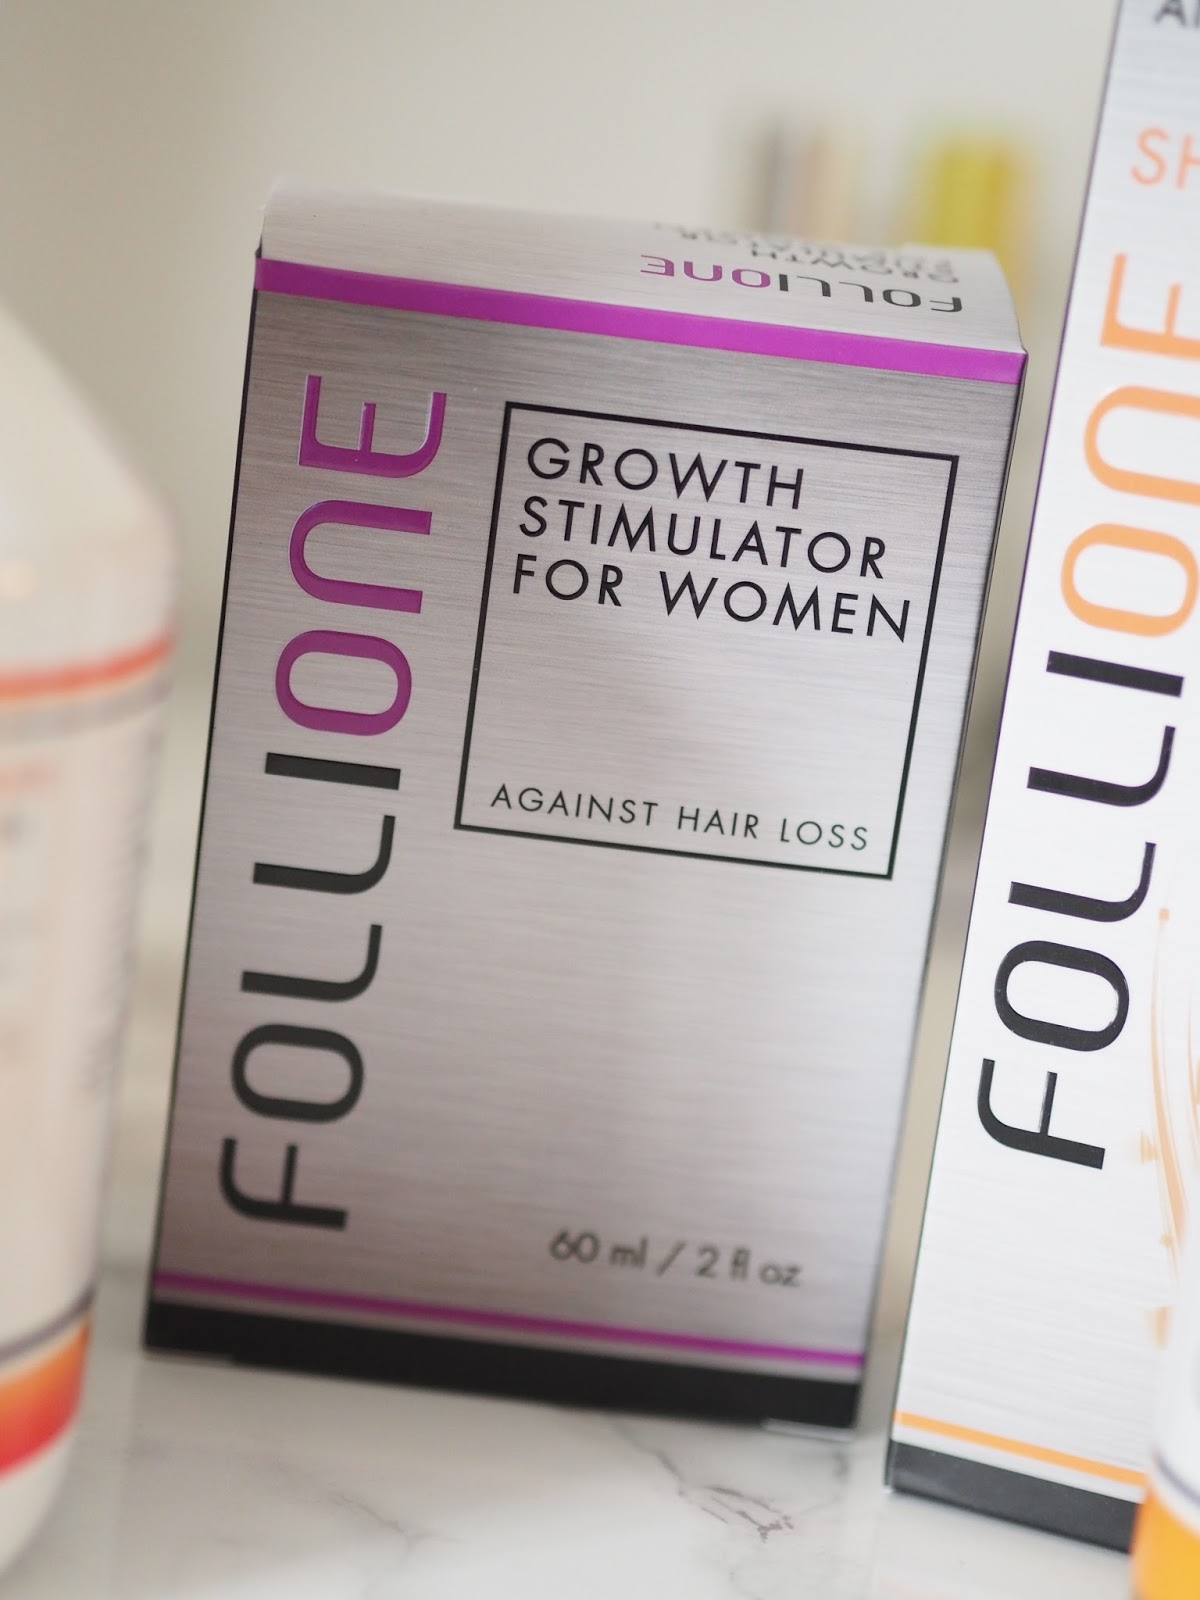 Follione review growth stimulator hair loss Priceless Life of Mine over 40 lifestyle blog